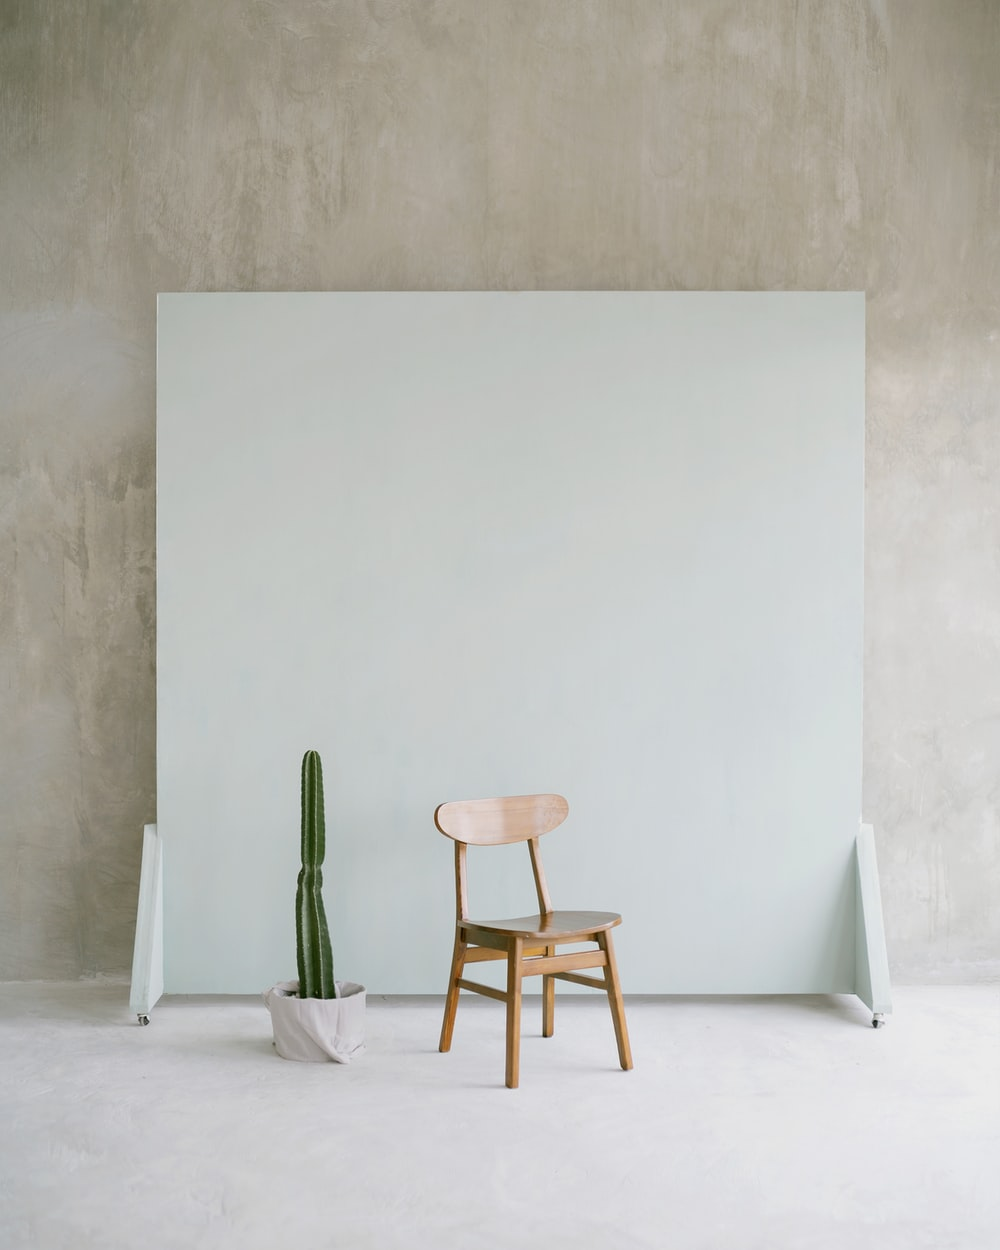 brown wooden seat beside white wall